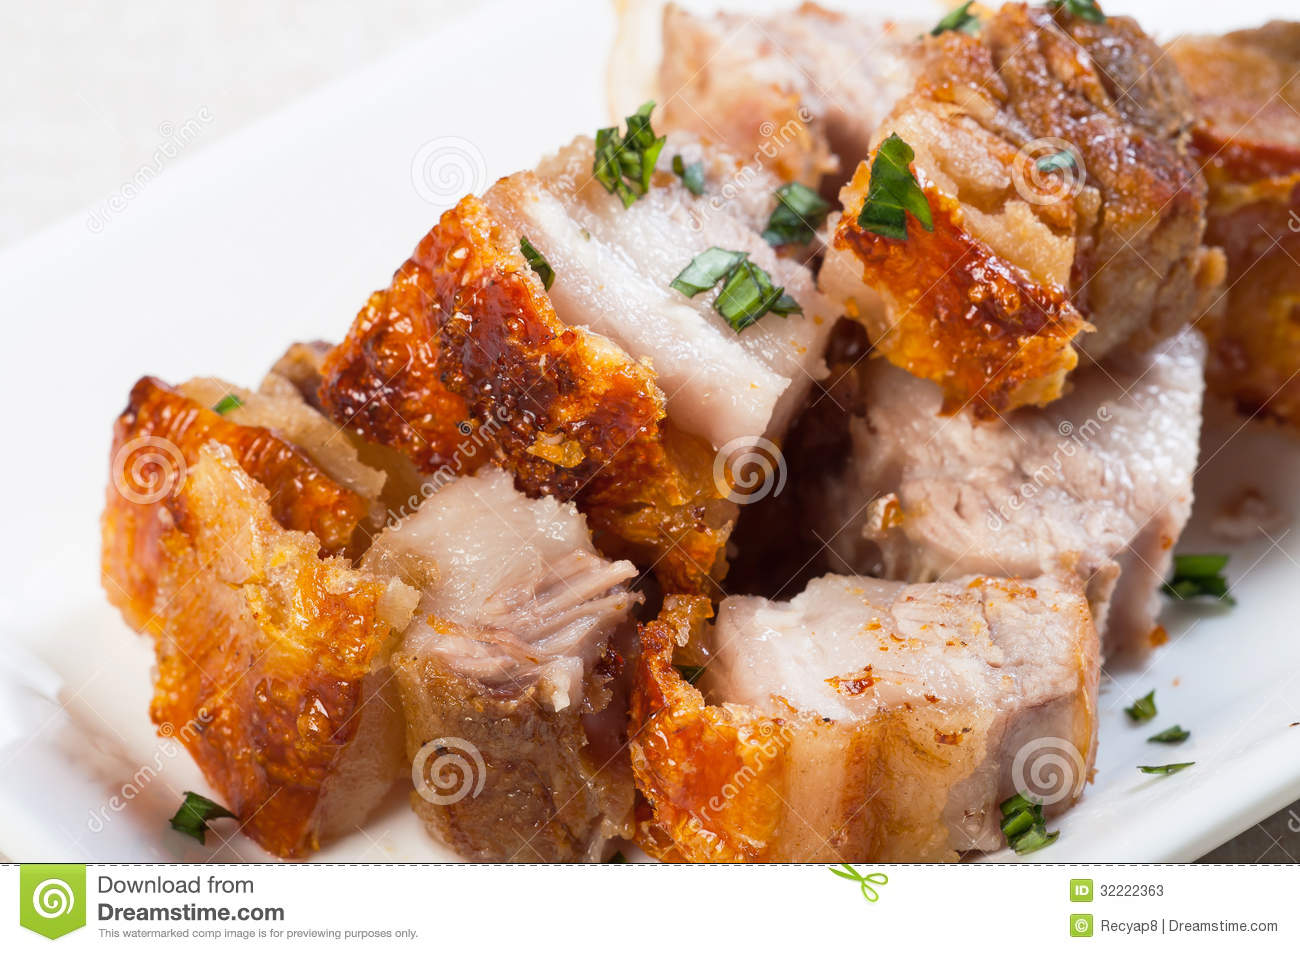 Download Deep Fried Pork Belly With Liver Sauce Stock Image Image Of Broil Boiled